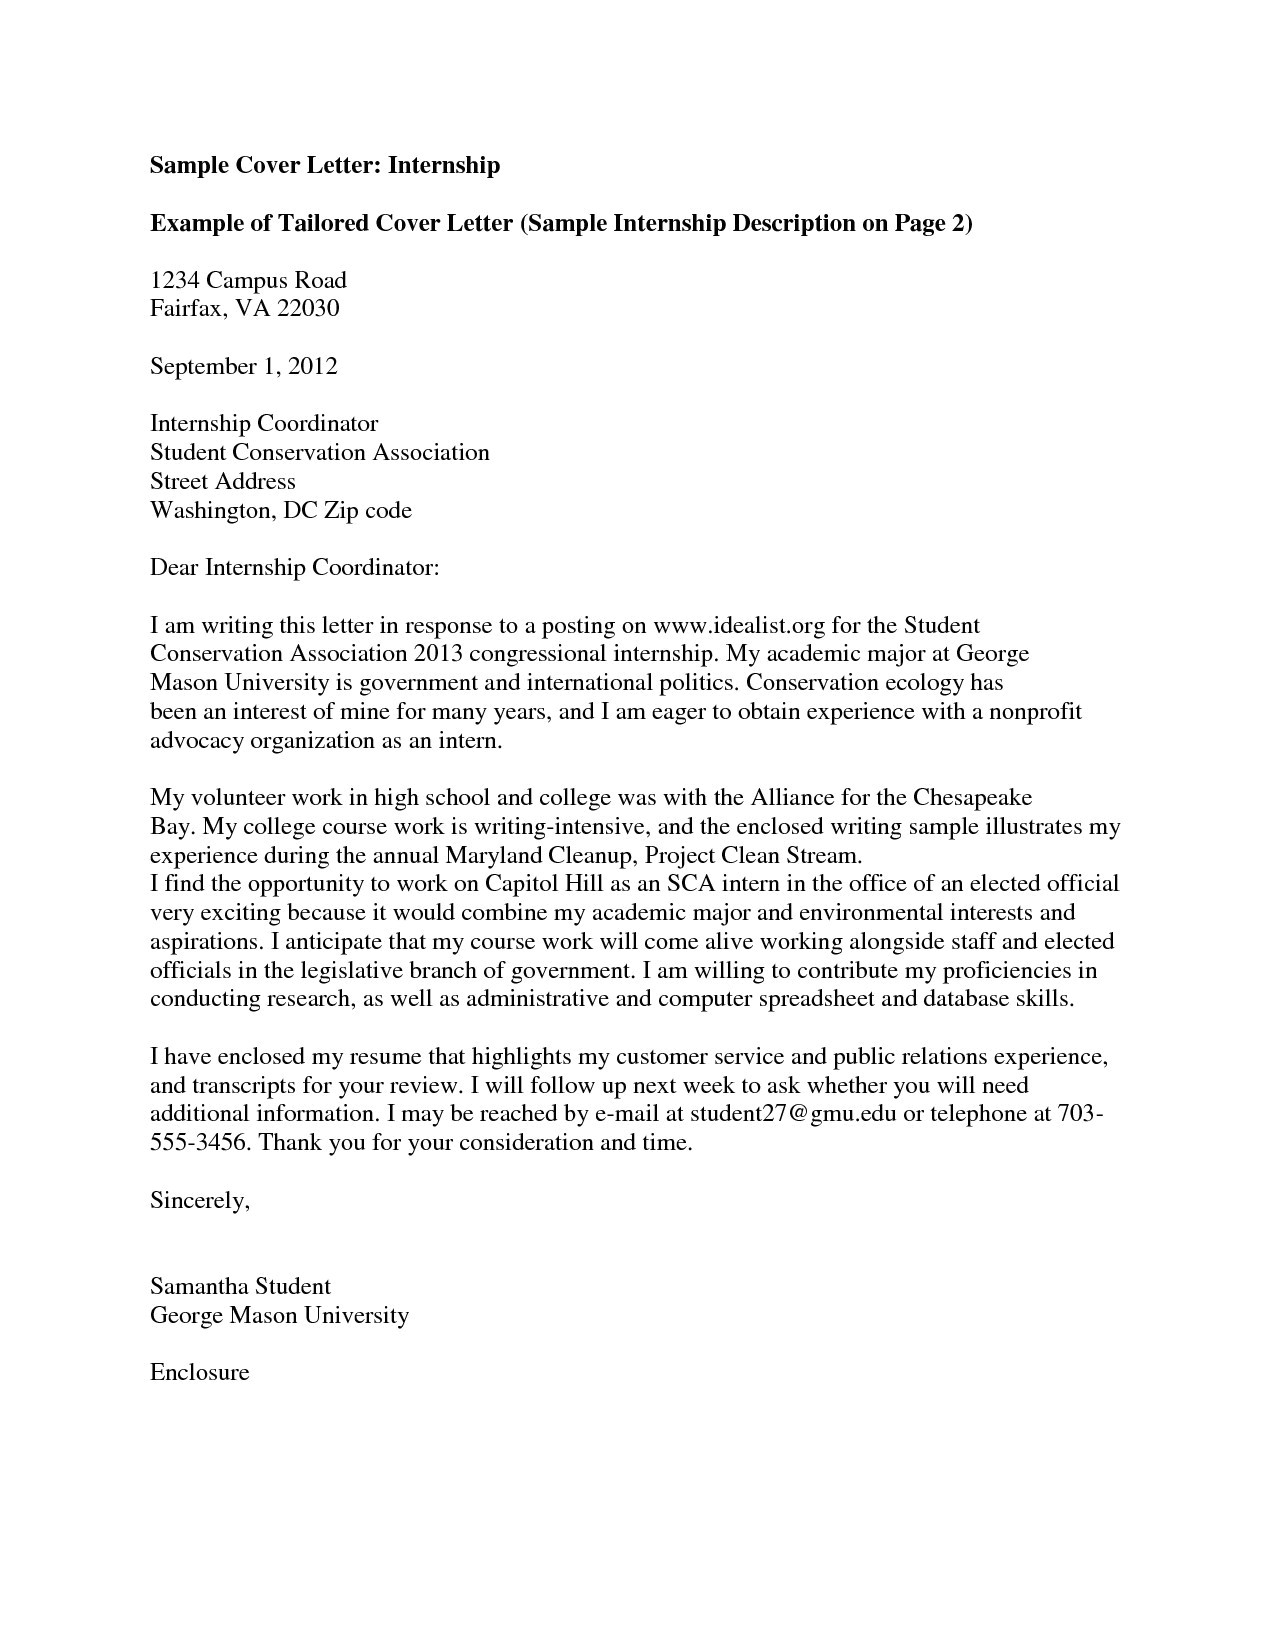 Cover Letter to Apply for University Cover Letter Examples Application University New Academic